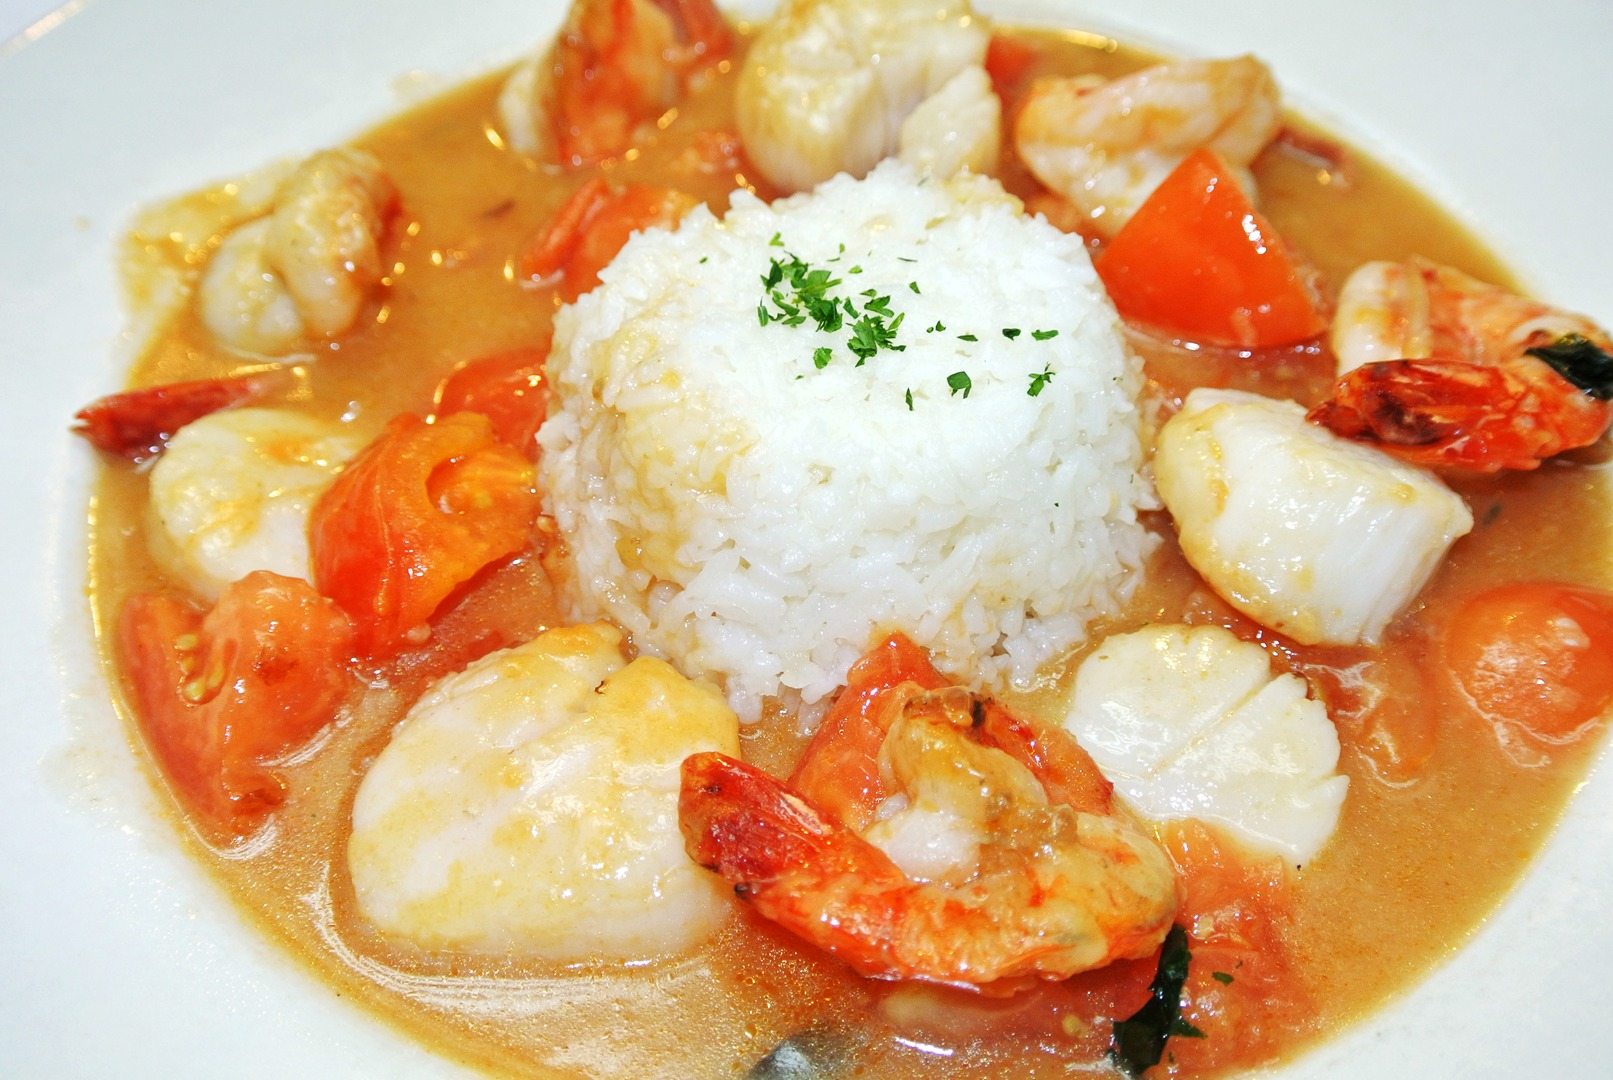 Seafood soup with shrimp, scallops and tomatoes witha  lump of white rice in the center.